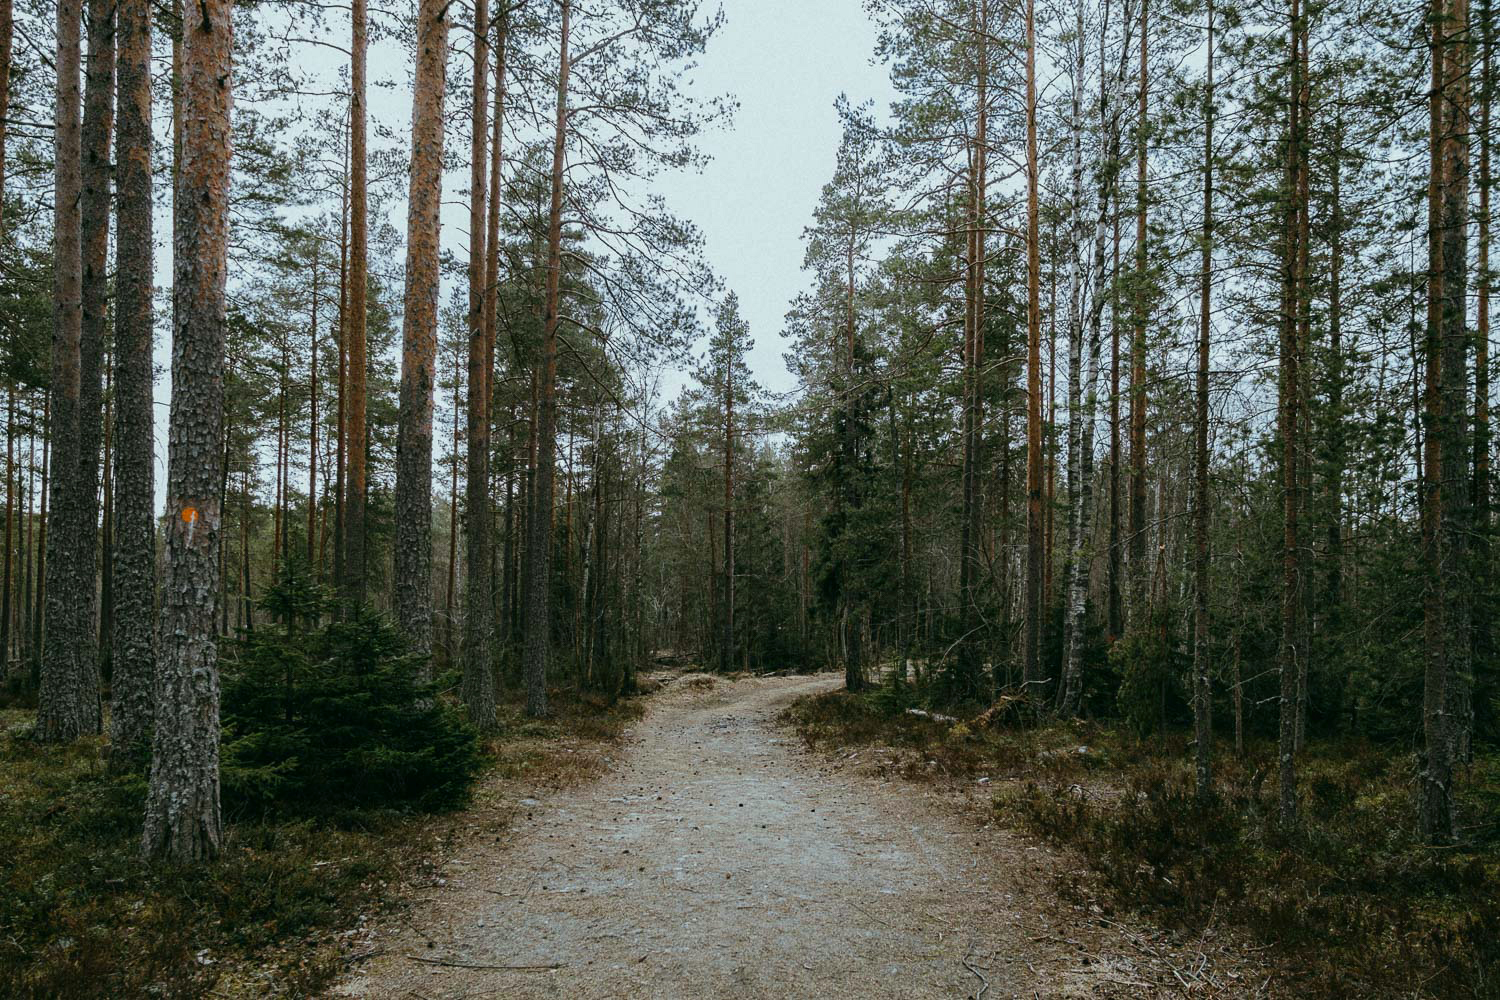 Wide path in a forest